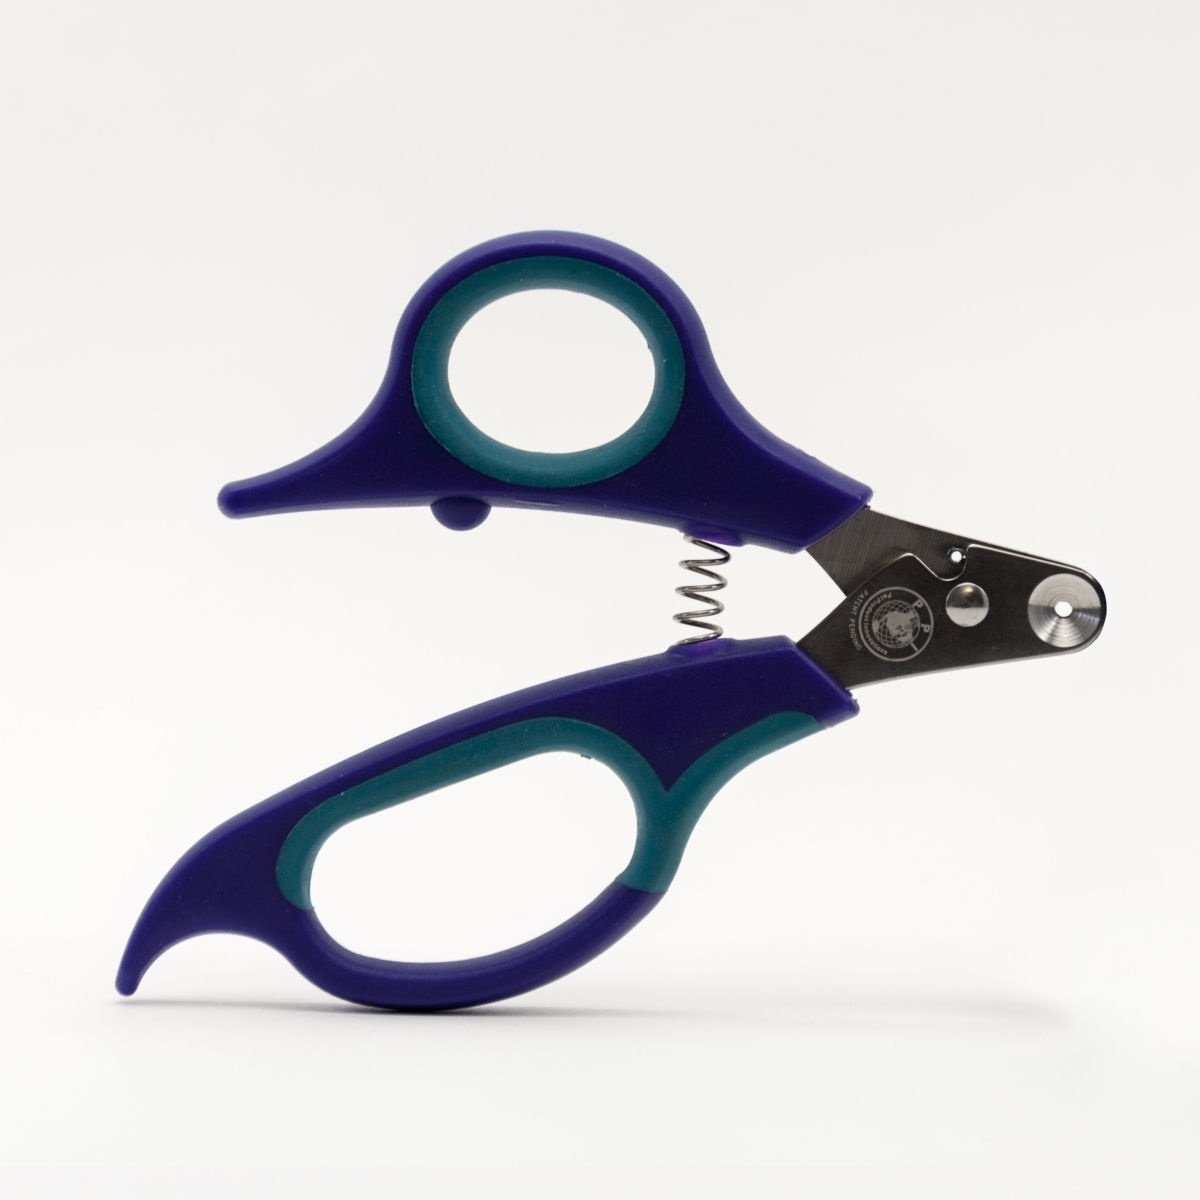 Zen Clipper Pet Nail Trimmers for Kittens, Birds Other Small Animals - the Worry-Free Nail Scissors -Unique Blade Clips the Tip Not the Quick - Stress/Injury-Free Nail Cutting and Grooming - 2m by Zen Clipper (Image #2)